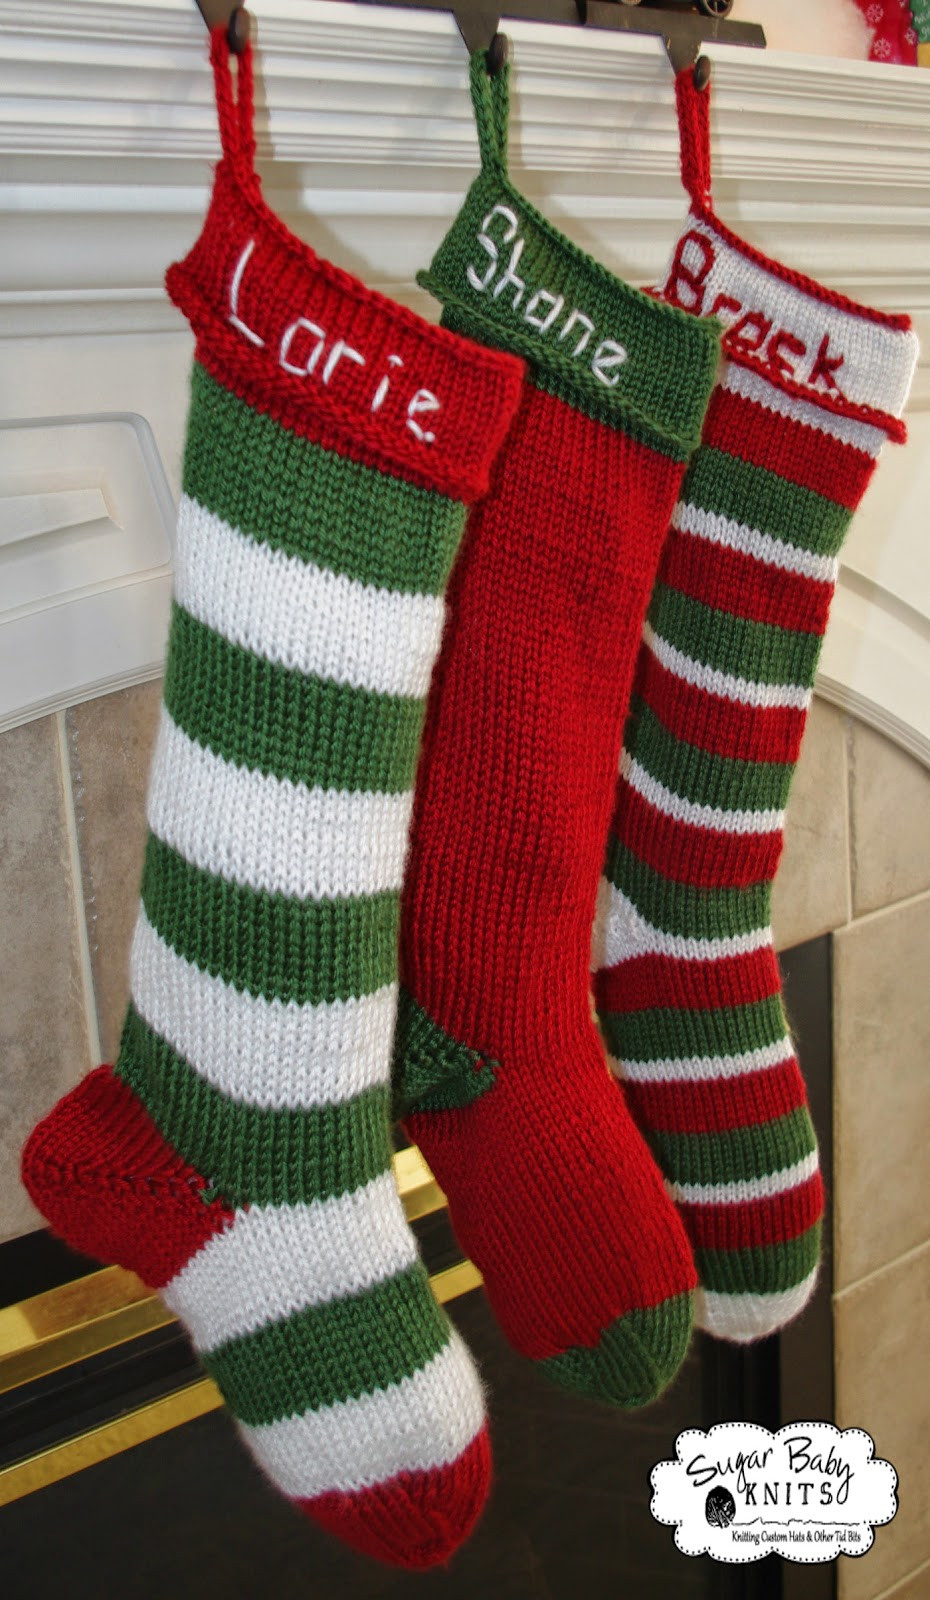 Best Of Sugar Baby Knits New Personalized Knit Stocking Pattern Knit Stocking Pattern Of Attractive 47 Pictures Knit Stocking Pattern